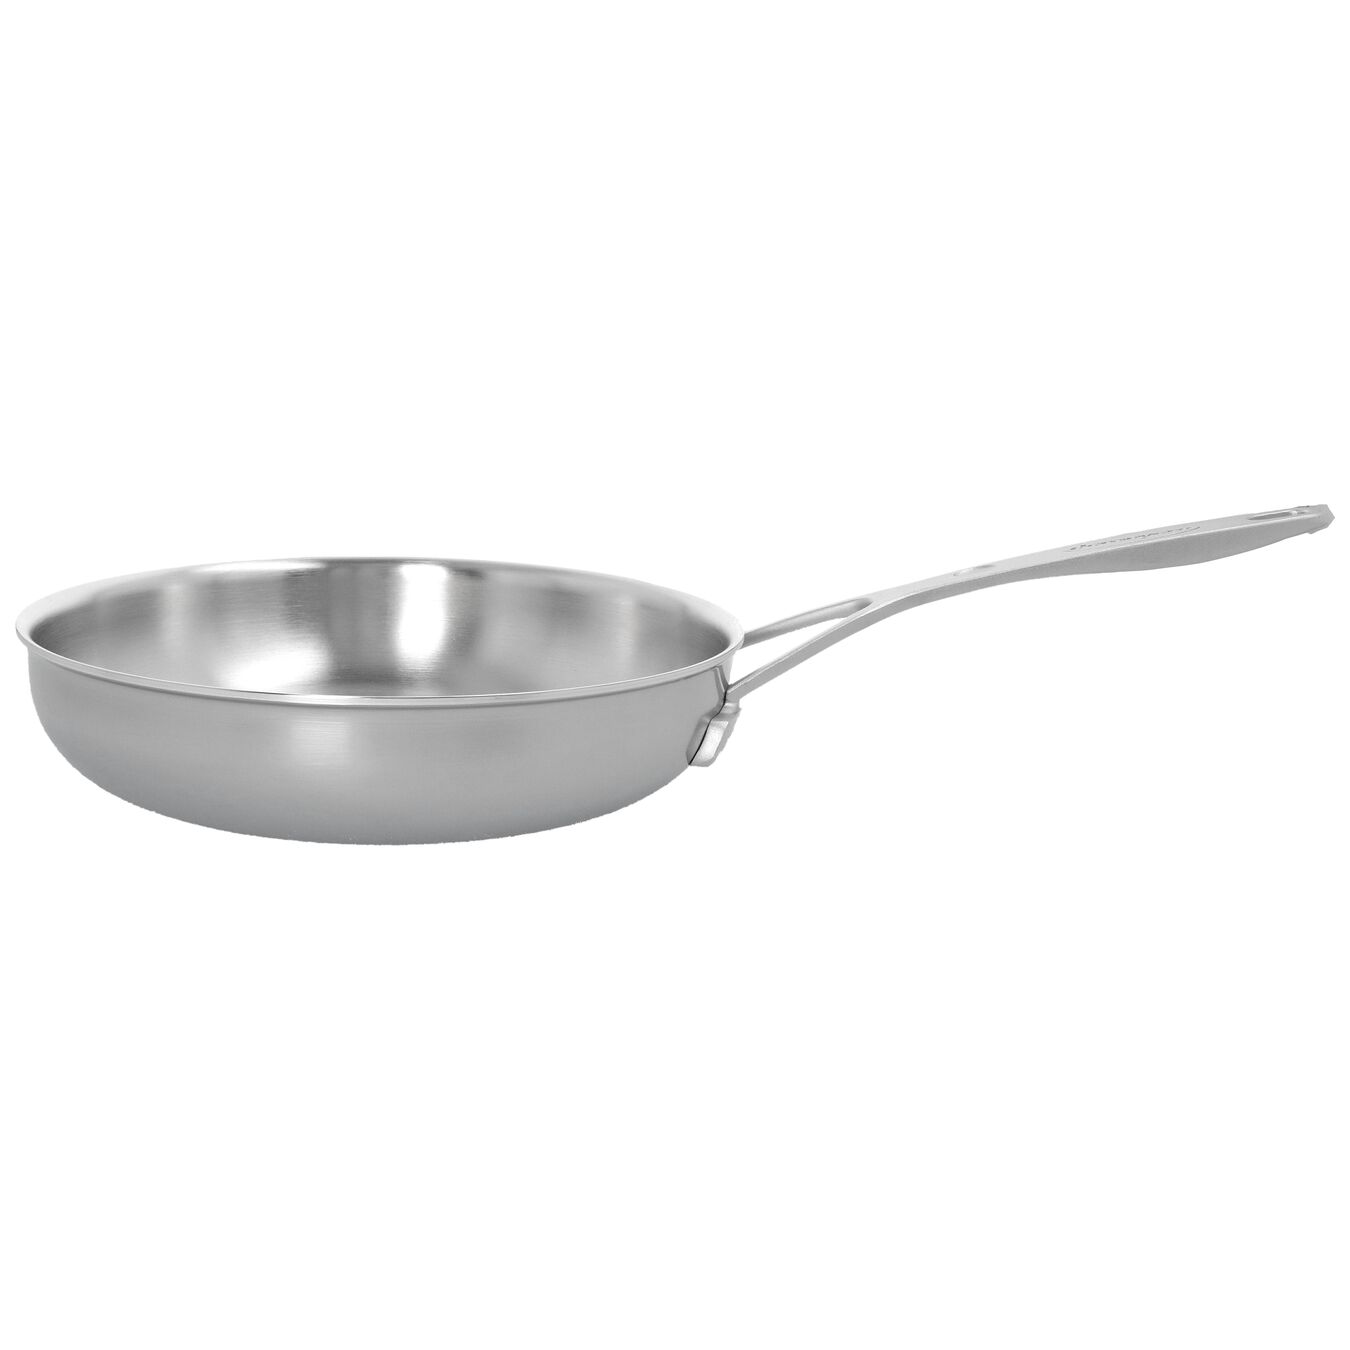 24 cm / 9.5 inch Frying pan,,large 1